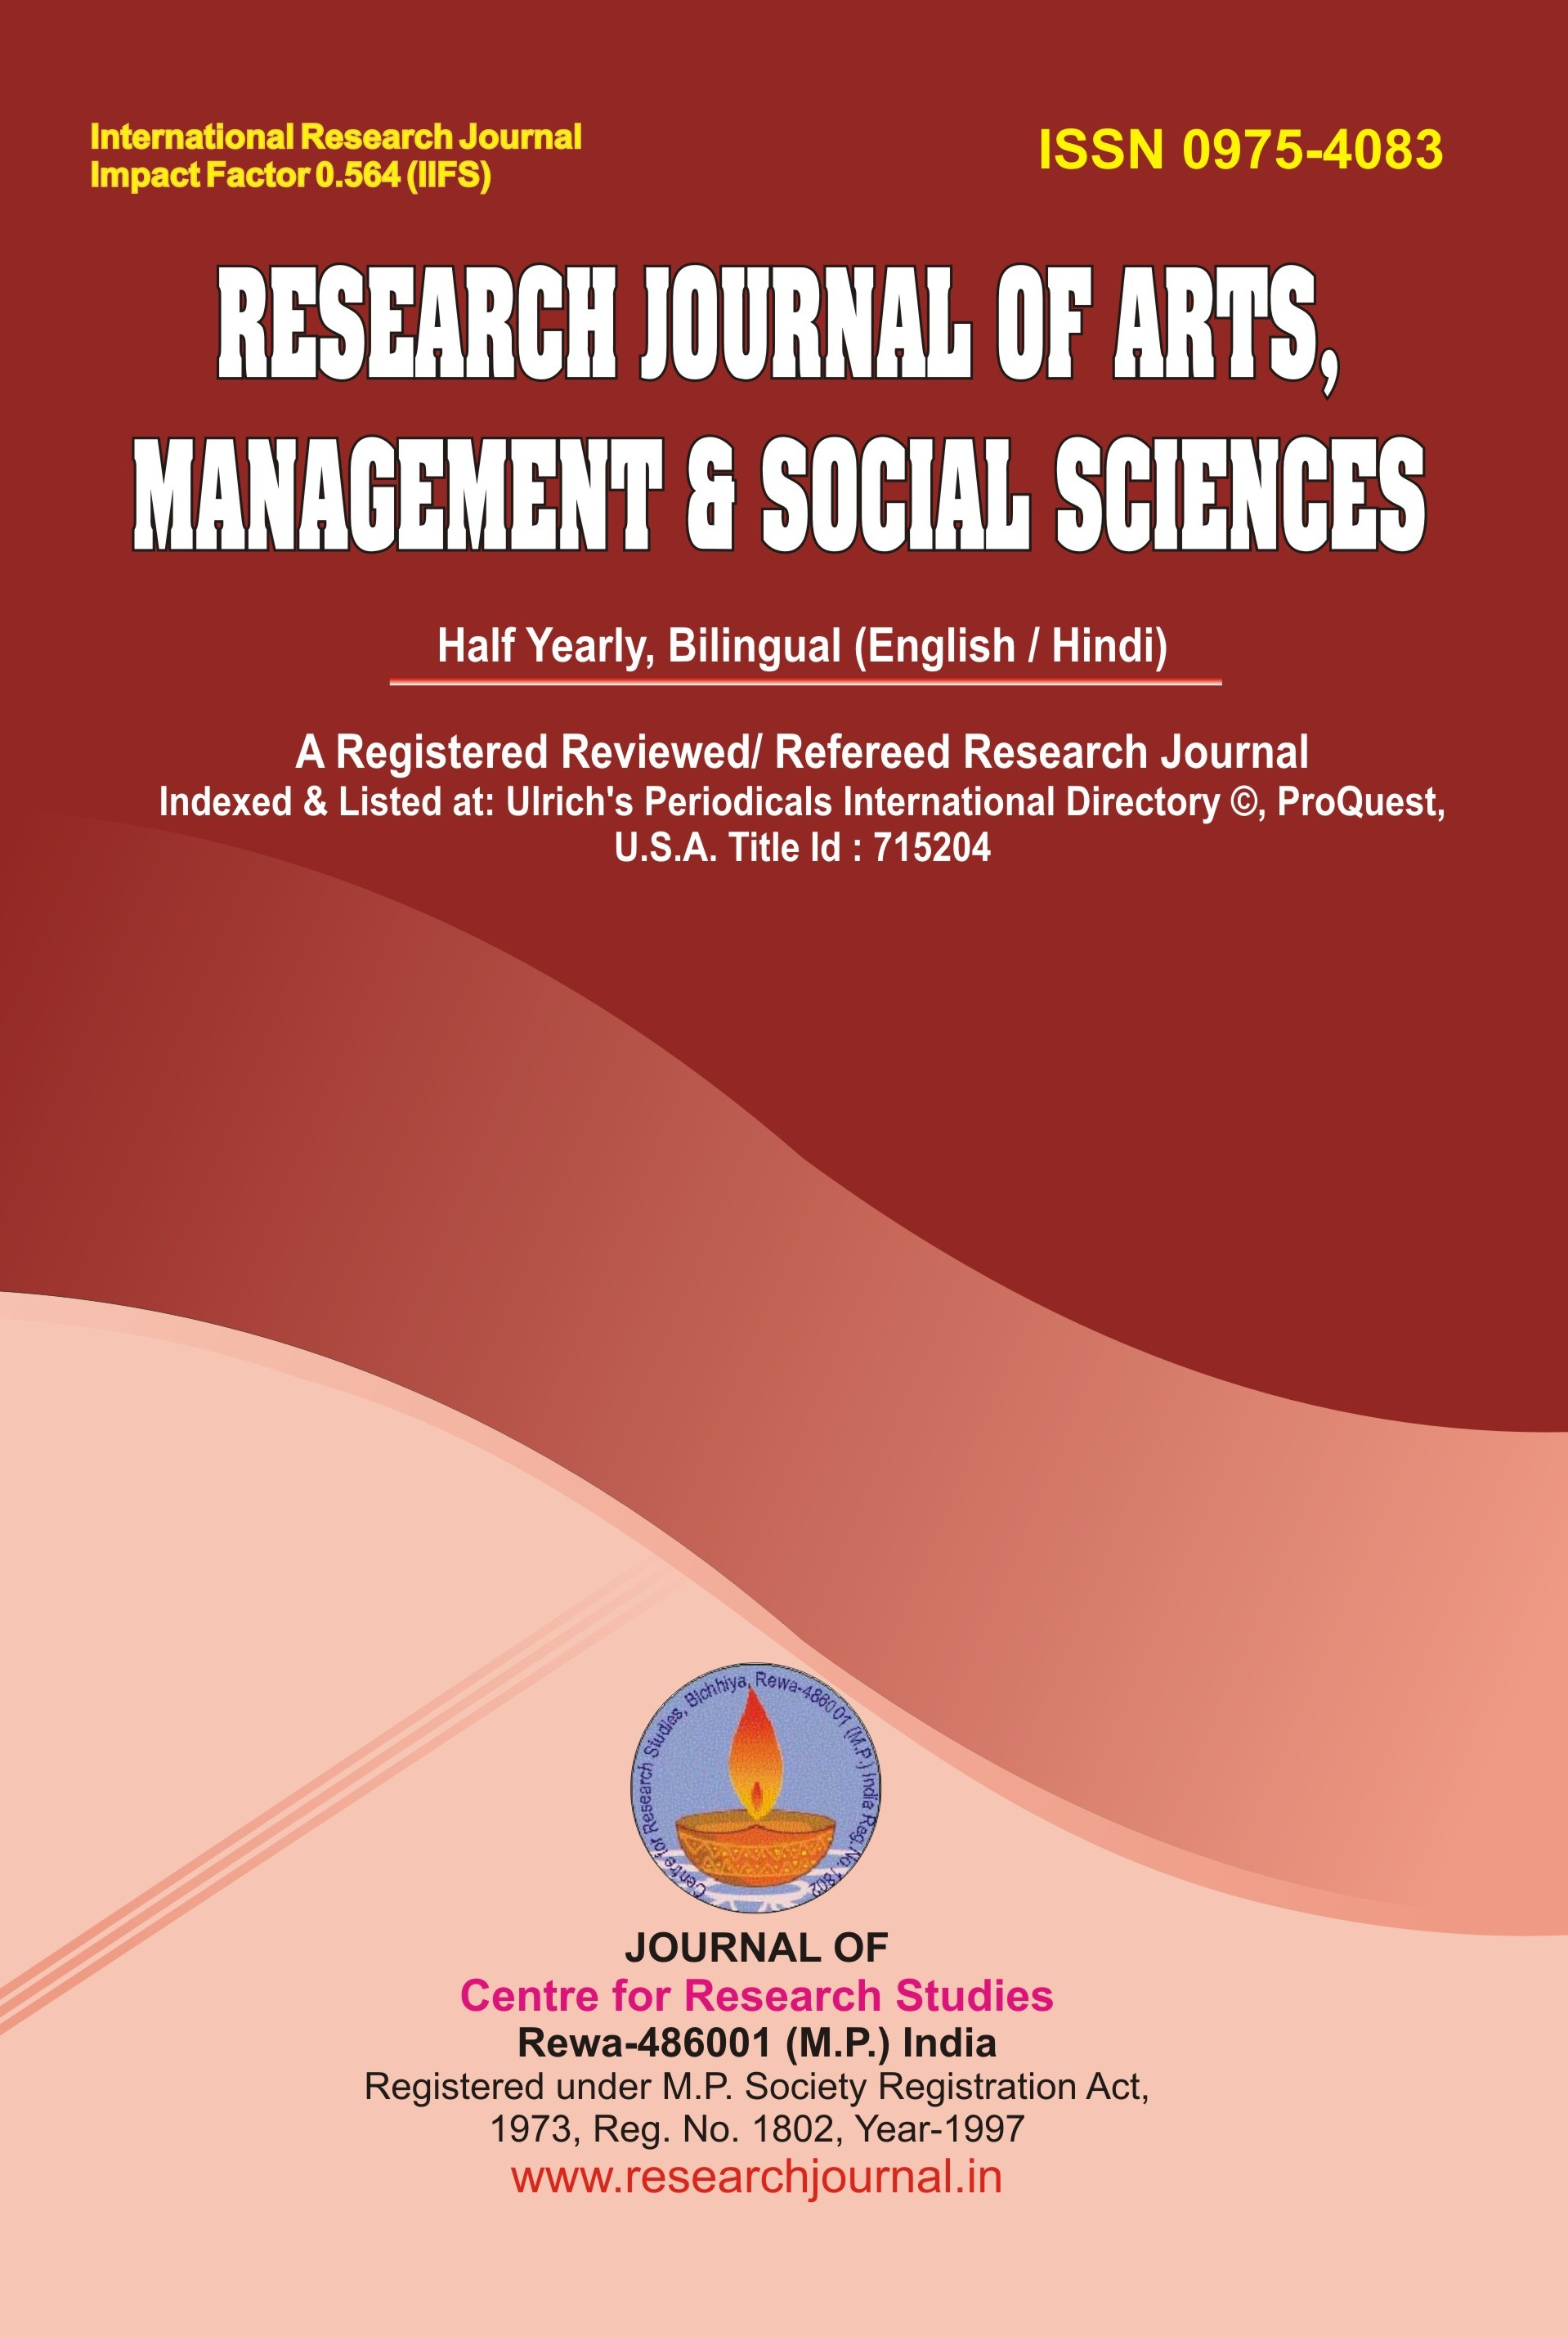 Social Sciences news